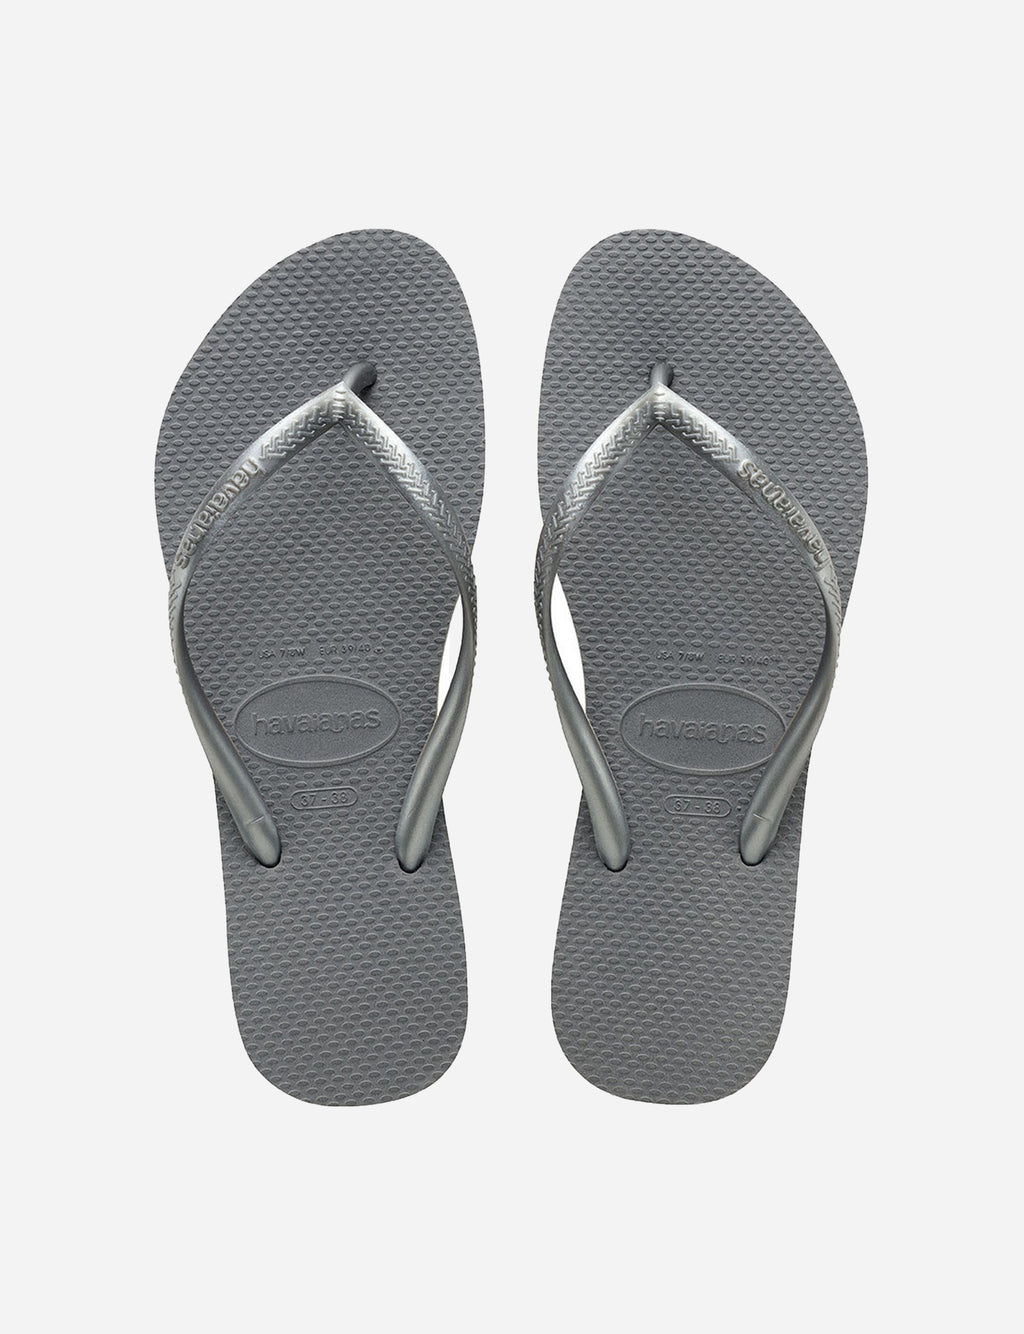 Havaianas Slim Sandal in Steel Grey